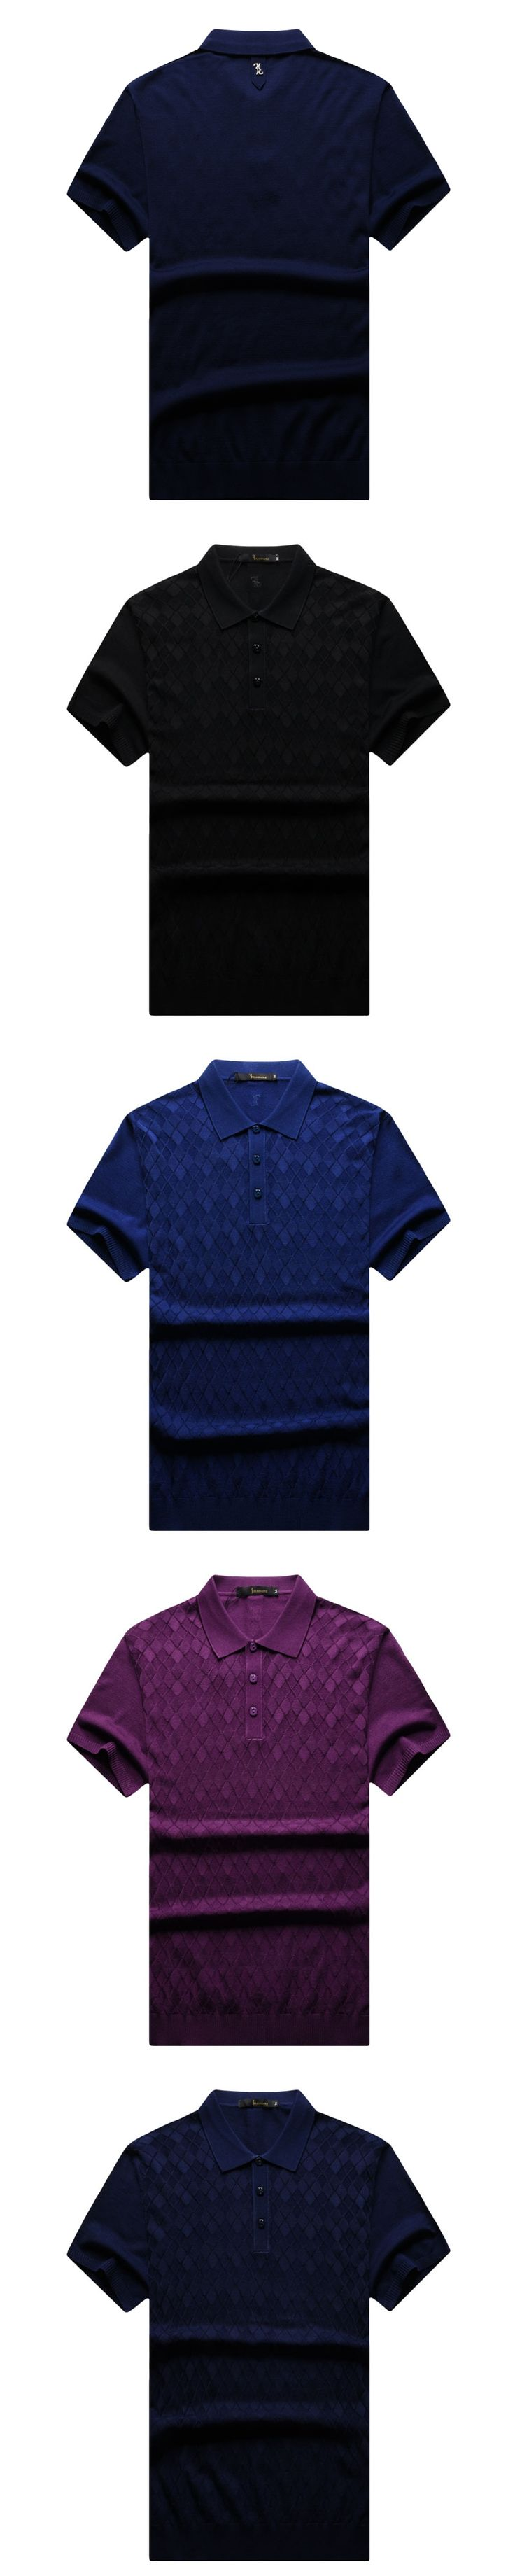 Billionaire Italian Couture t shirt 2017 new style fashion comfort excellent fabric geometric pattern gentleman free shipping